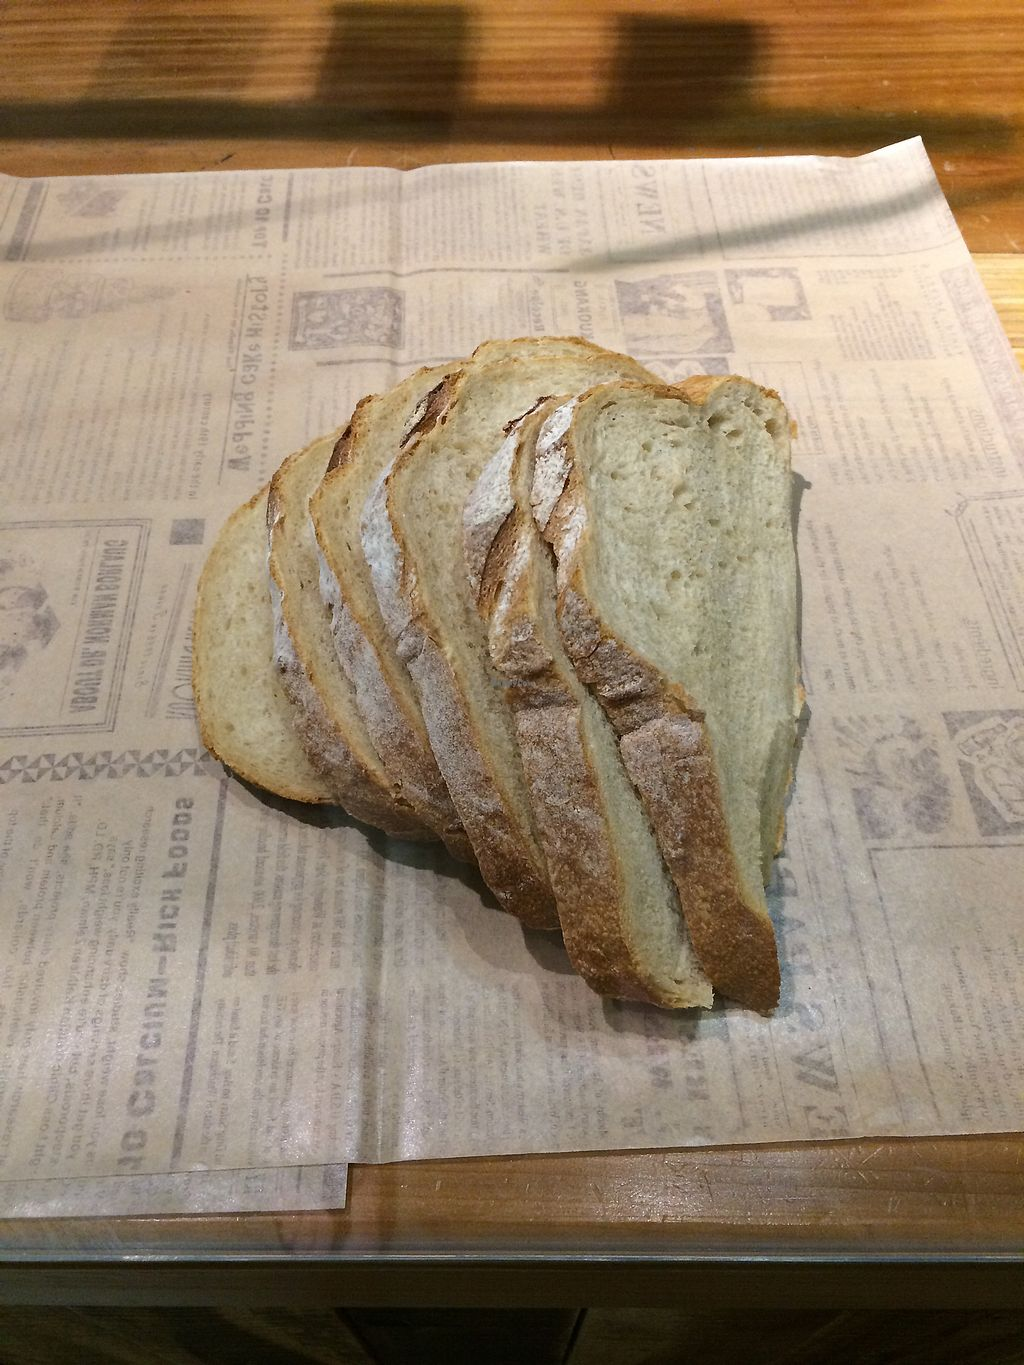 """Photo of Happy Green - Tainan Wei Le Lu  by <a href=""""/members/profile/JesseFletcher"""">JesseFletcher</a> <br/>Mmmm great fresh bread <br/> November 8, 2017  - <a href='/contact/abuse/image/104211/323264'>Report</a>"""